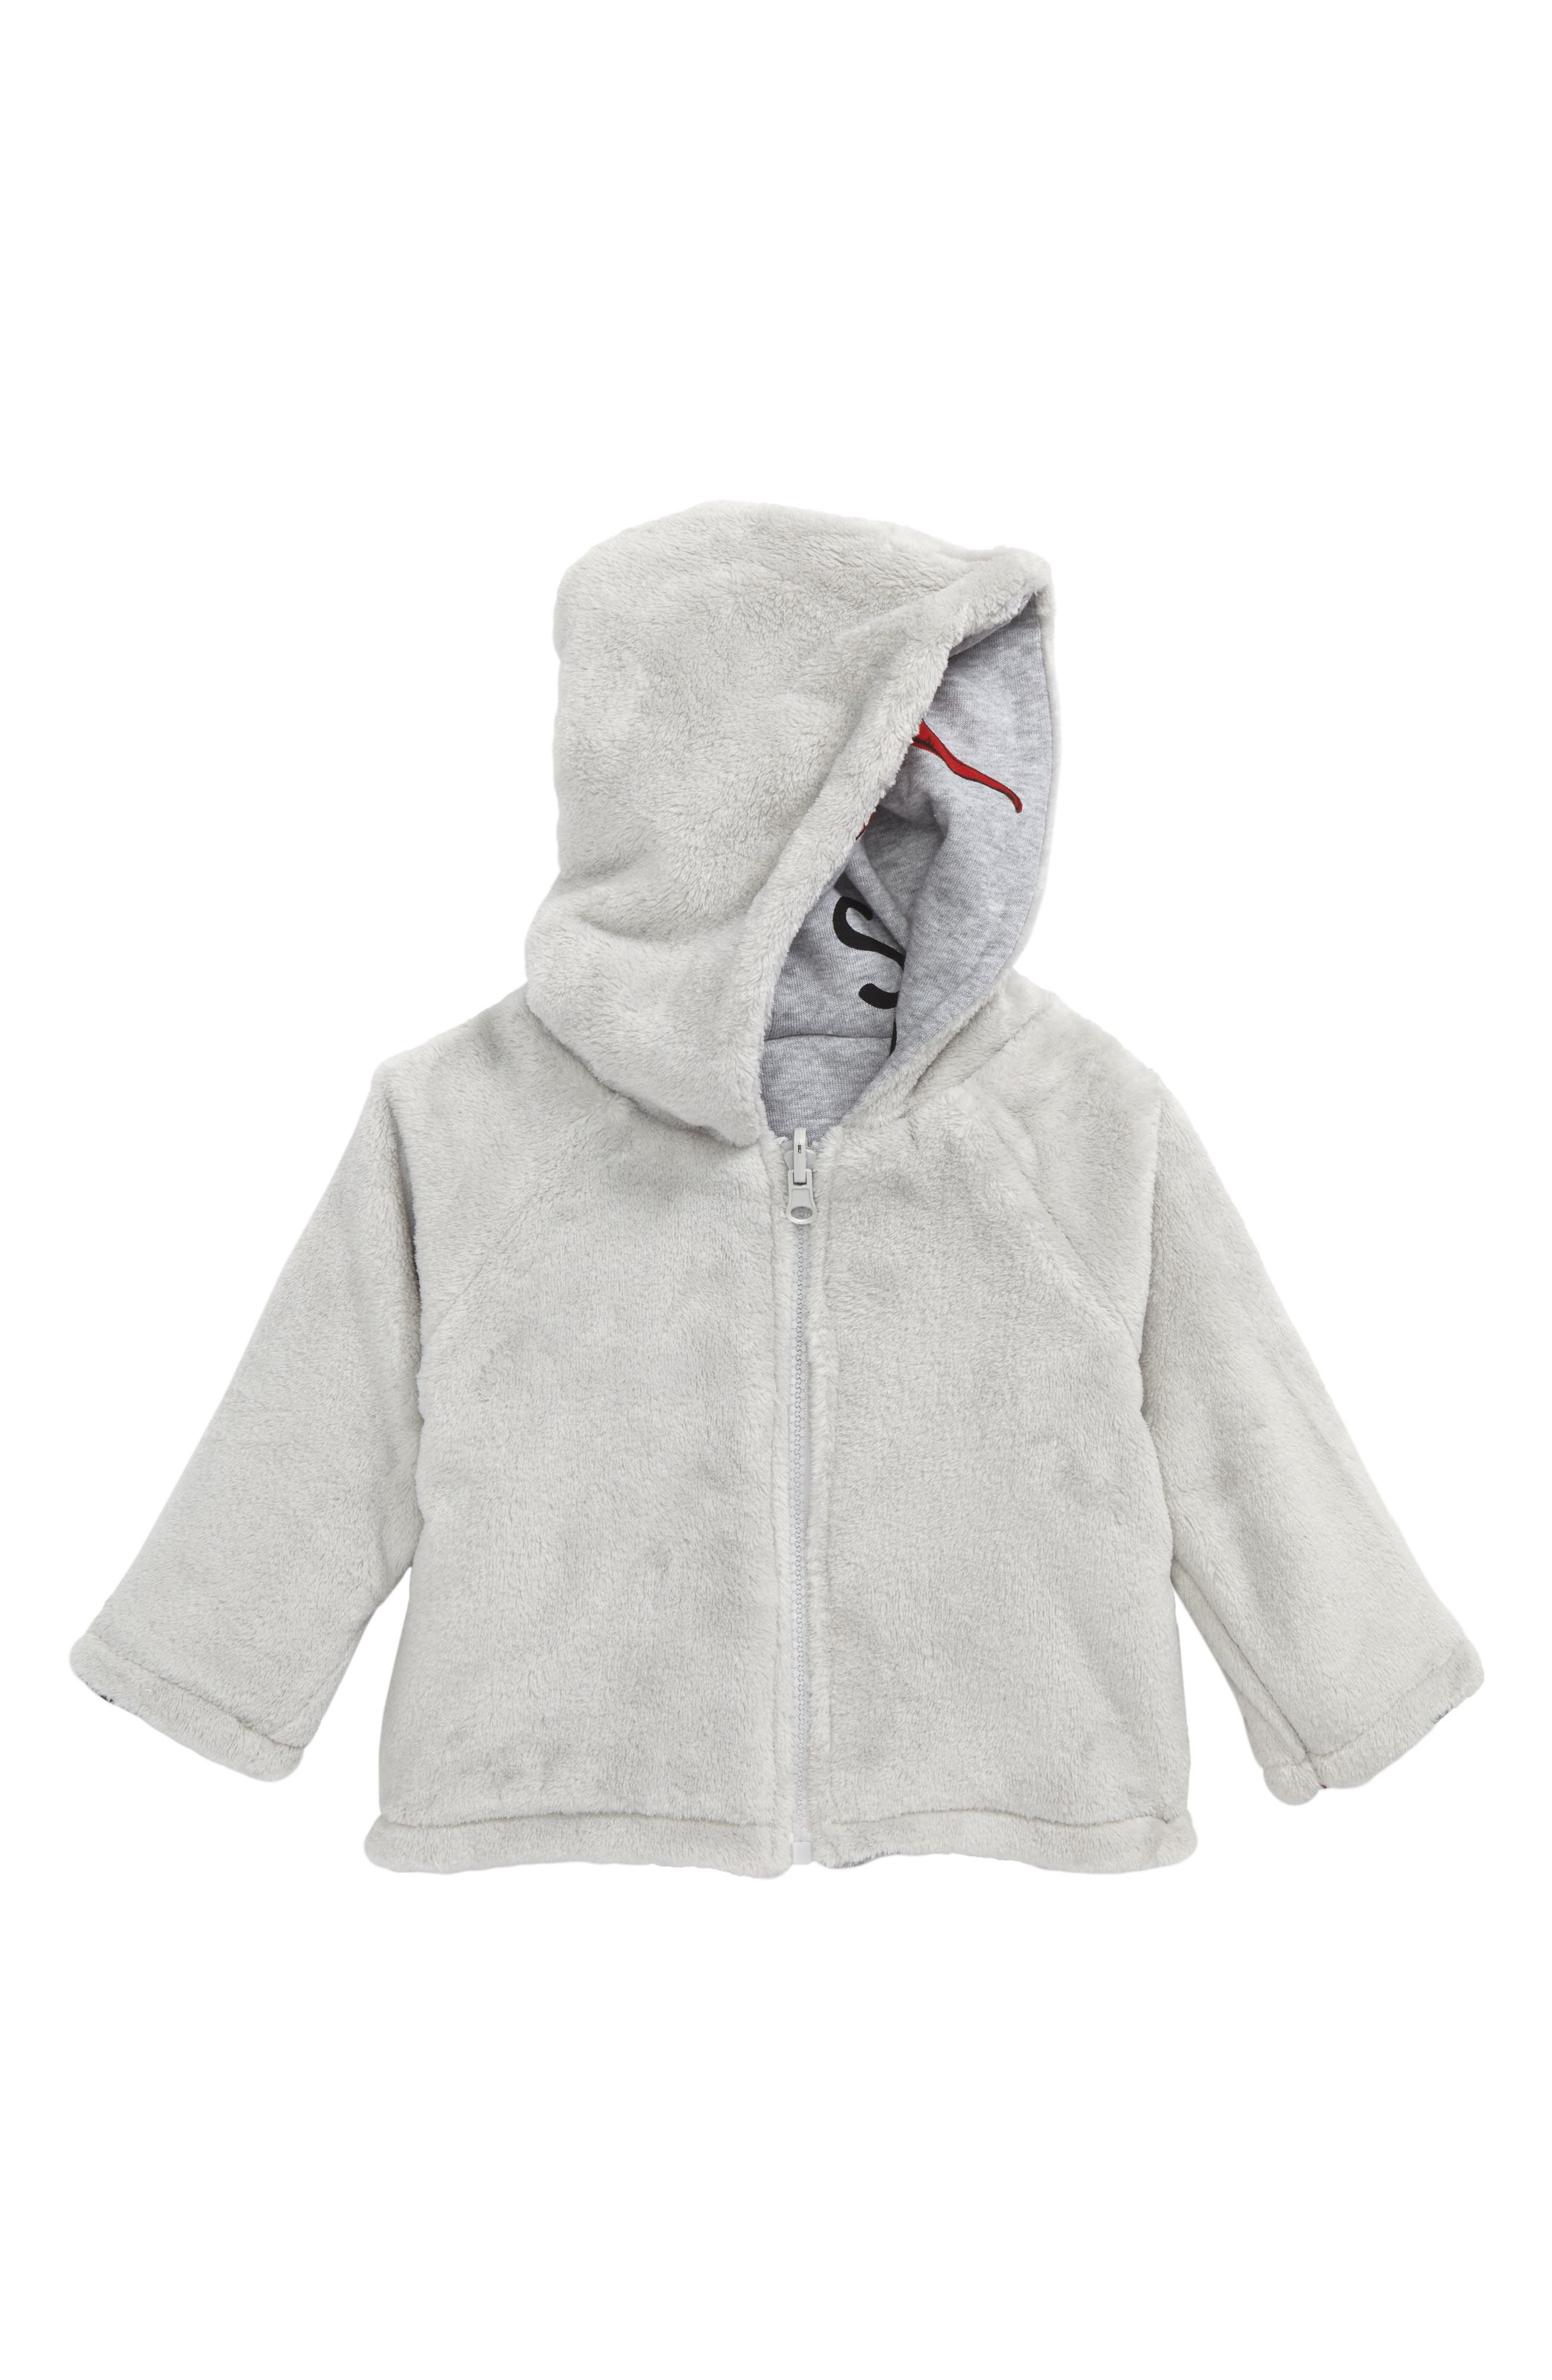 Chilli Reversible Jacket,                             Alternate thumbnail 2, color,                             Grey Marle